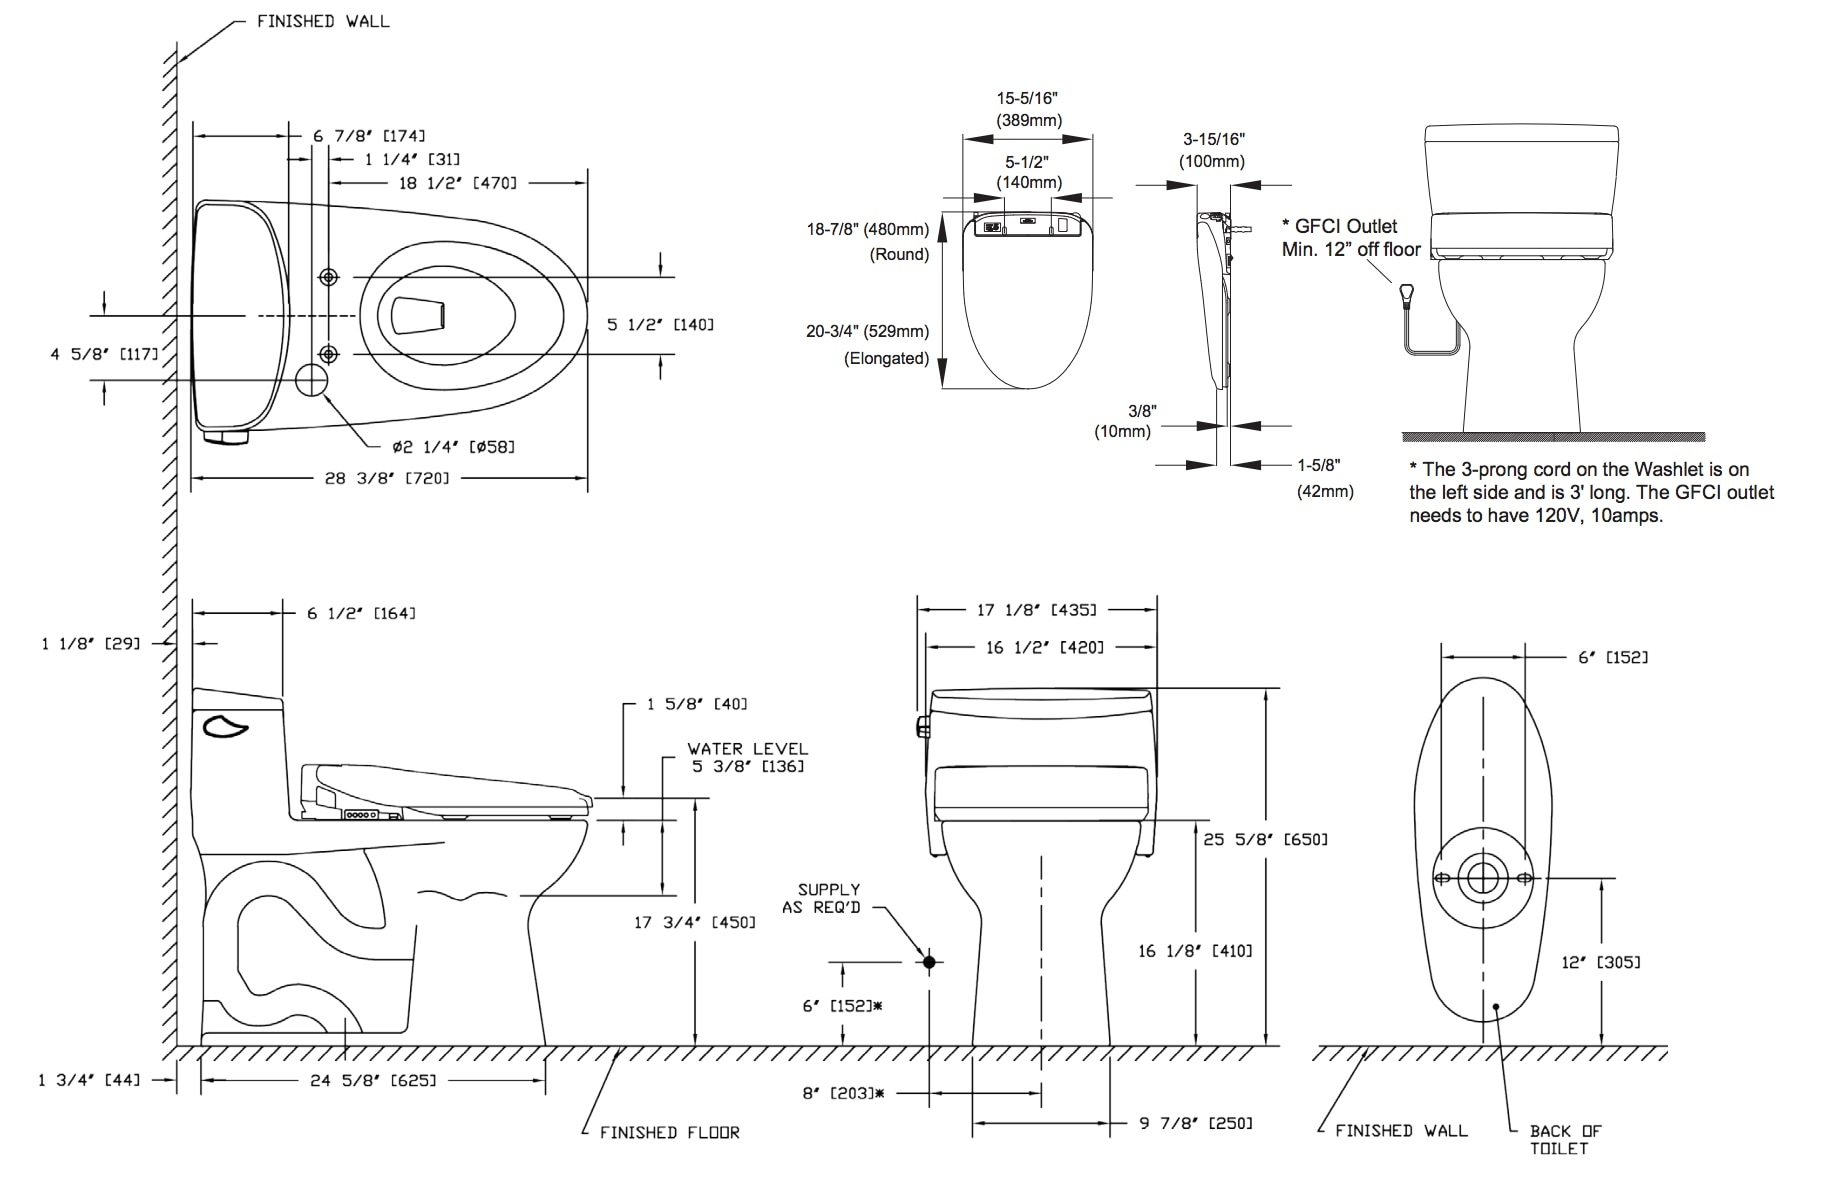 supreme-ii-washlet-s300e-one-piece-toilet-1.28-gpf-diagram.png